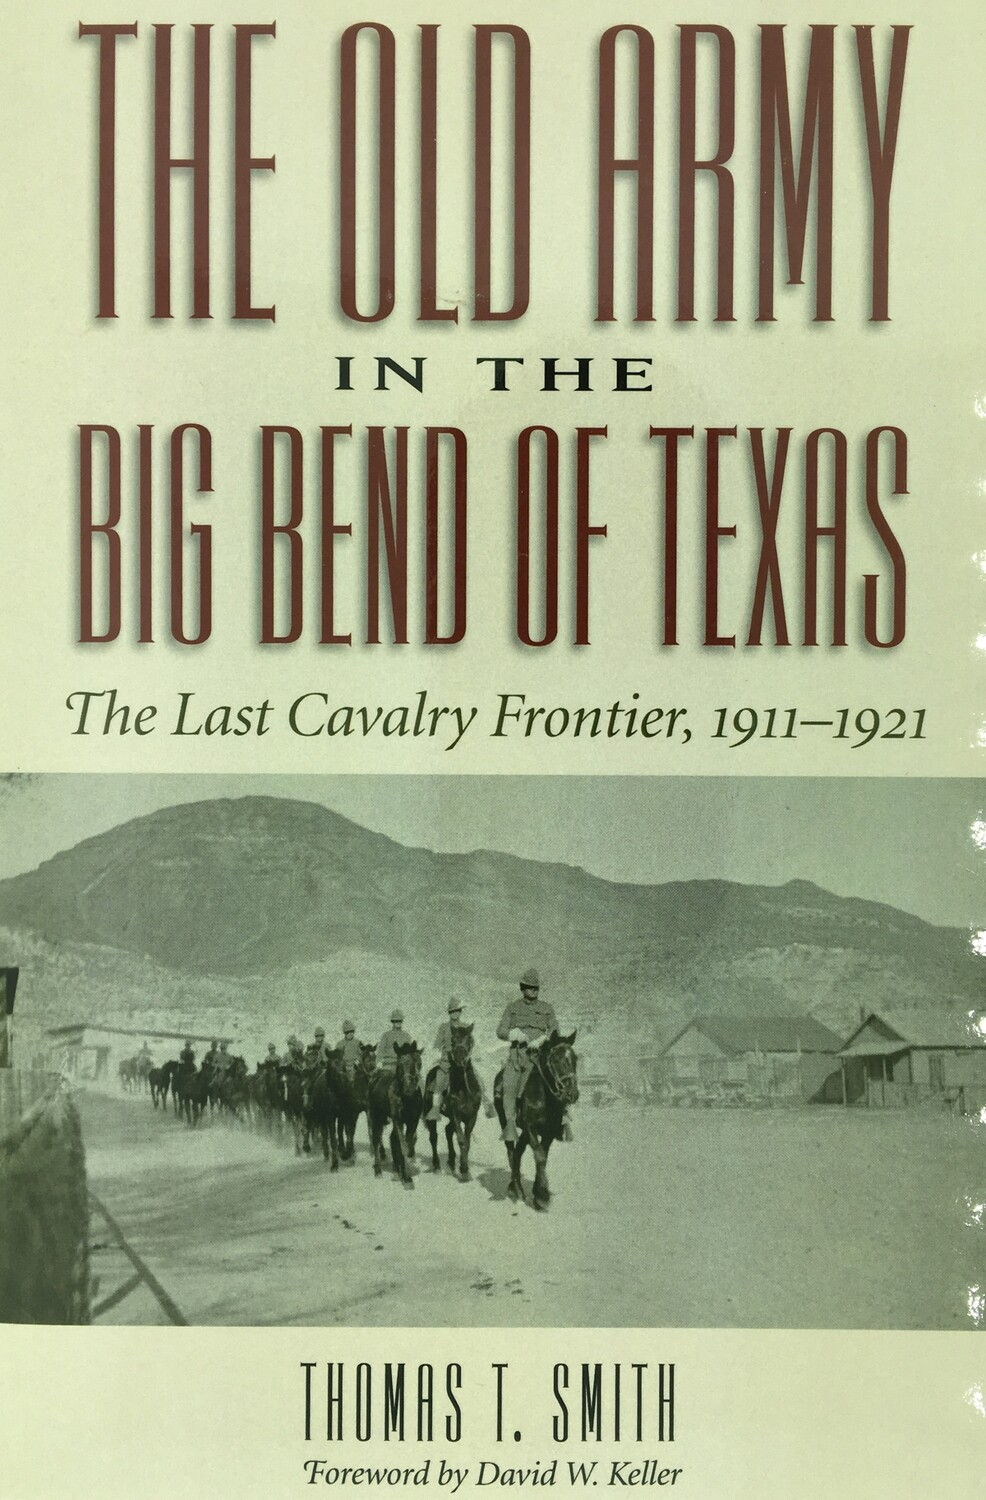 The Old Army in the Big Bend of Texas -paperback